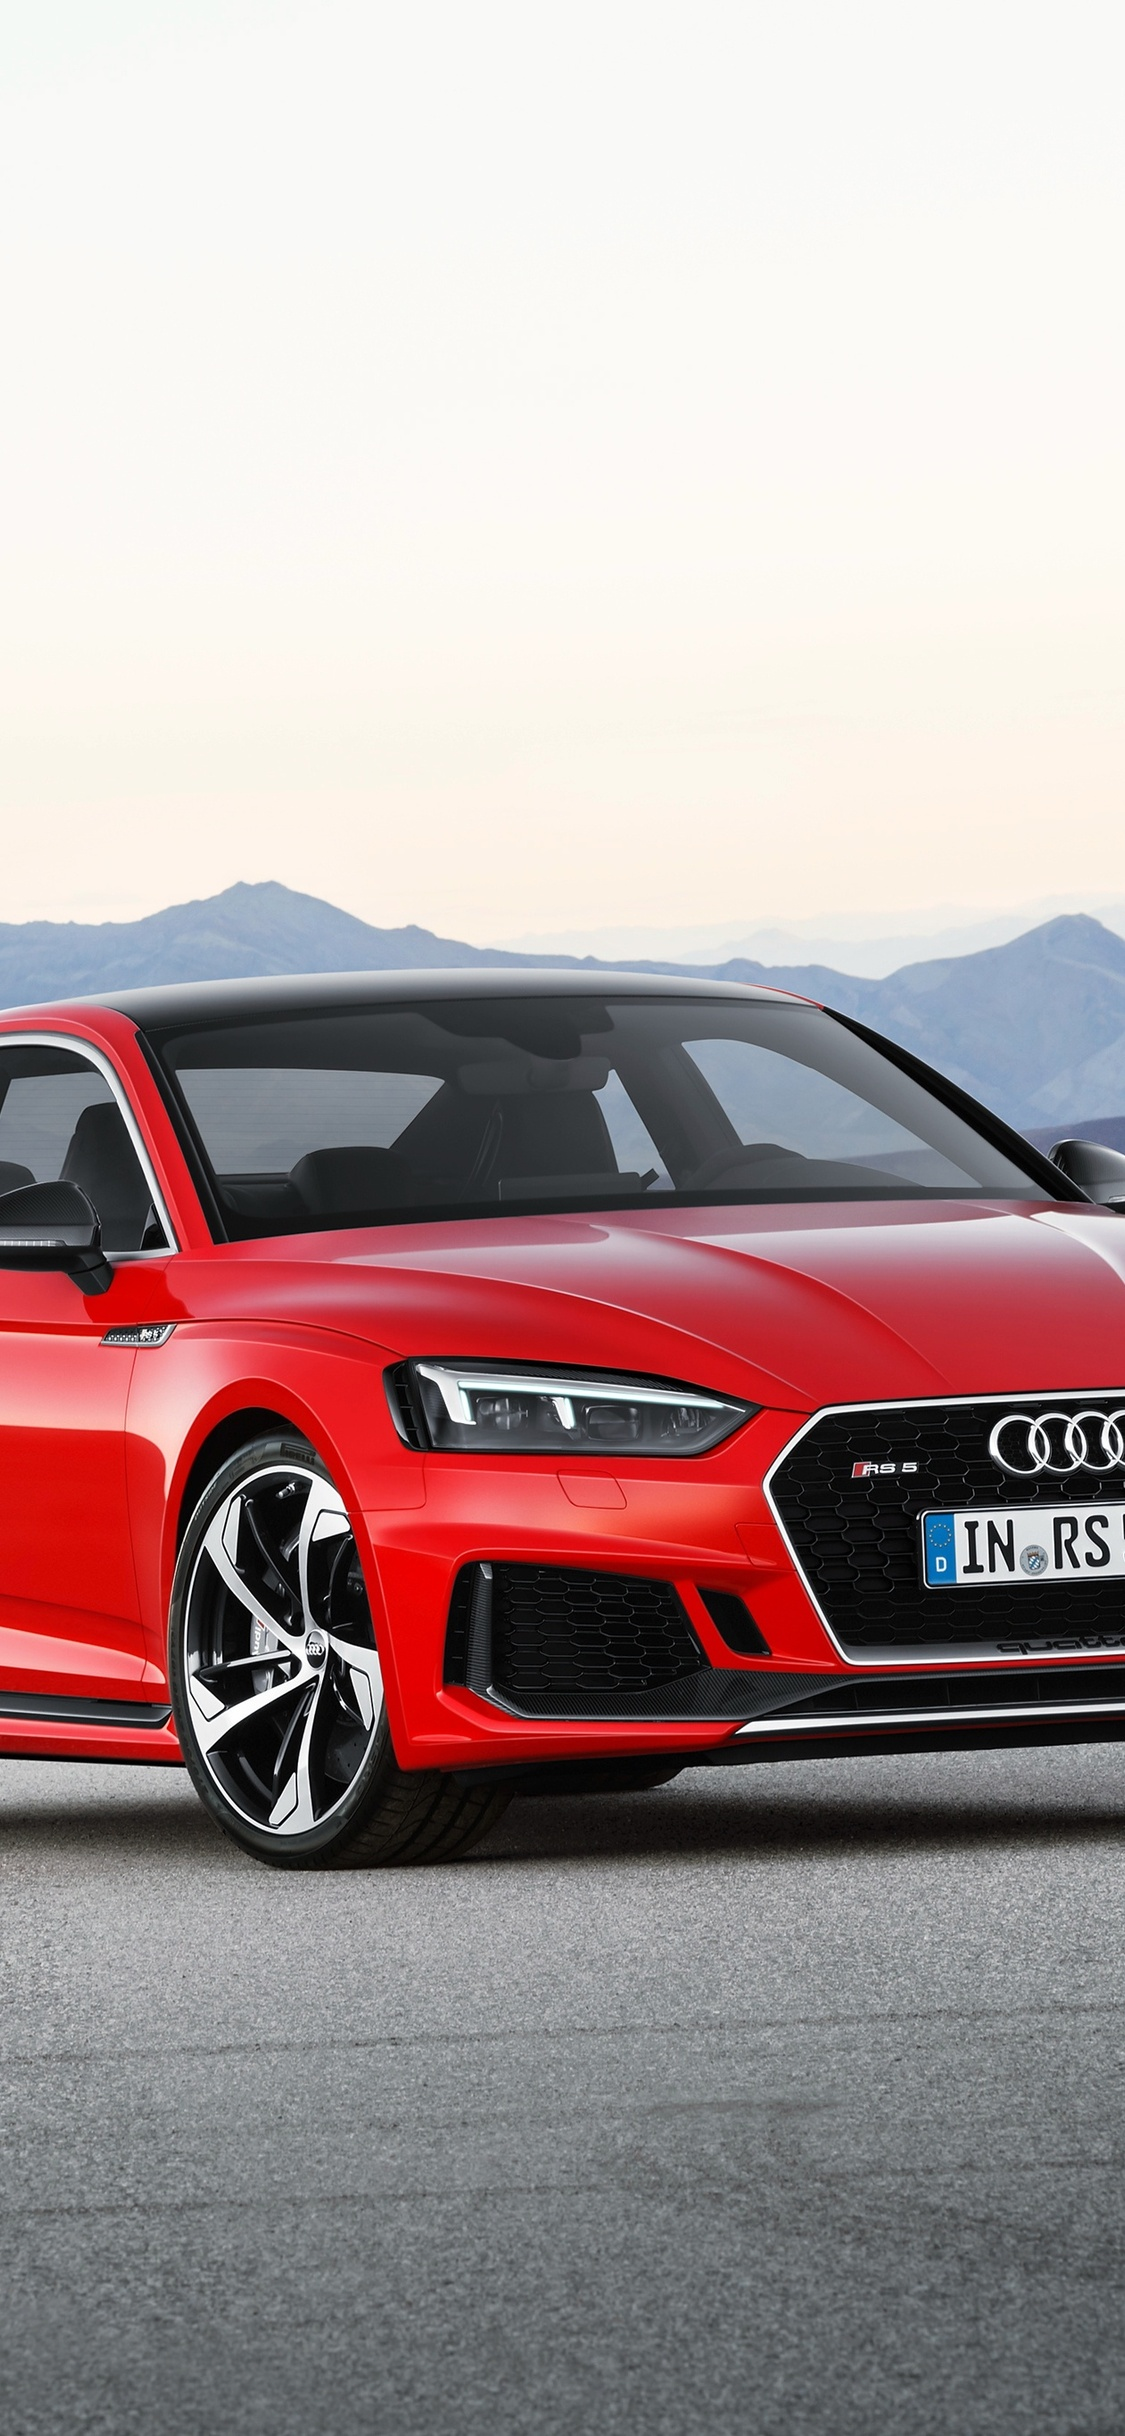 1125x2436 2018 Audi Rs5 Coupe Iphone Xs Iphone 10 Iphone X Hd 4k Wallpapers Images Backgrounds Photos And Pictures